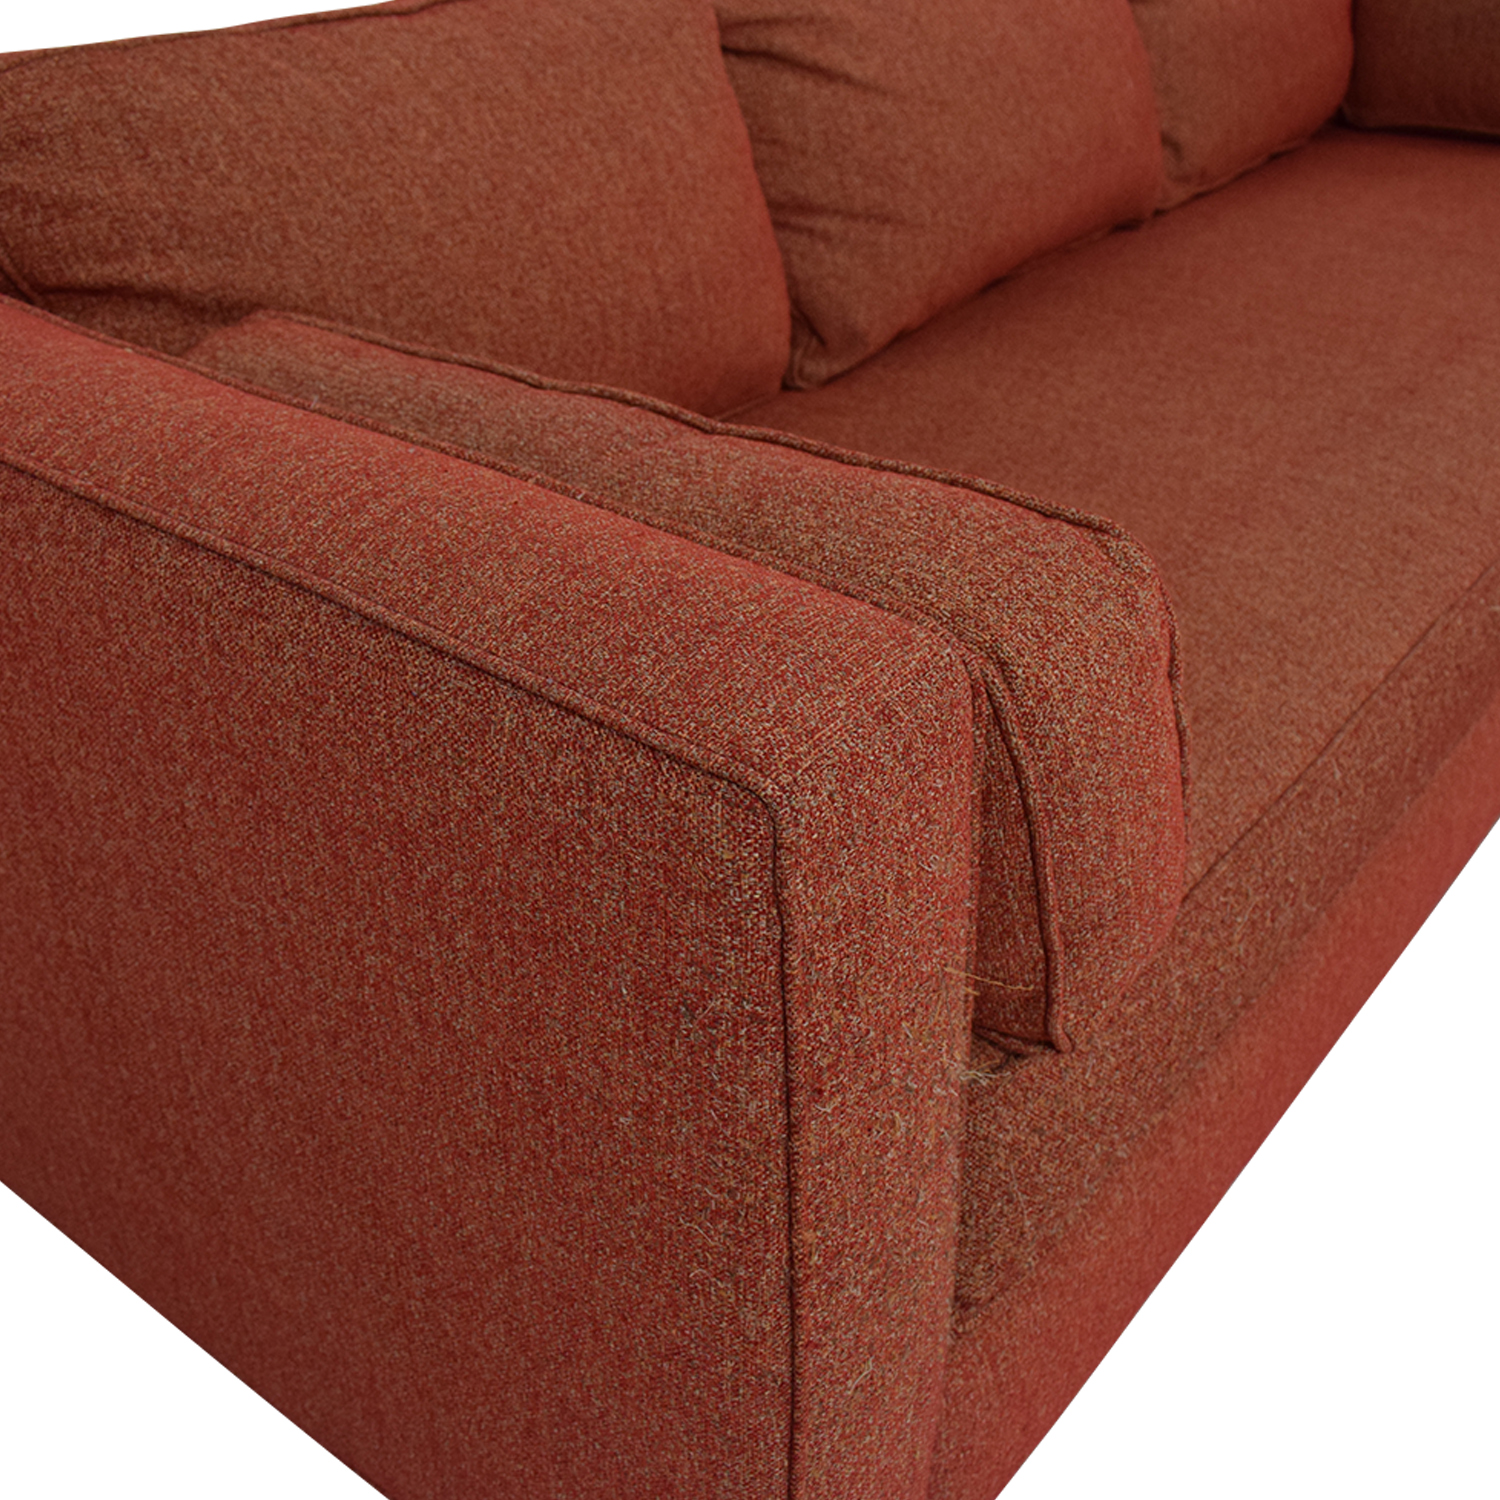 shop Younger Furniture Younger Furniture Single Cushion Sofa online